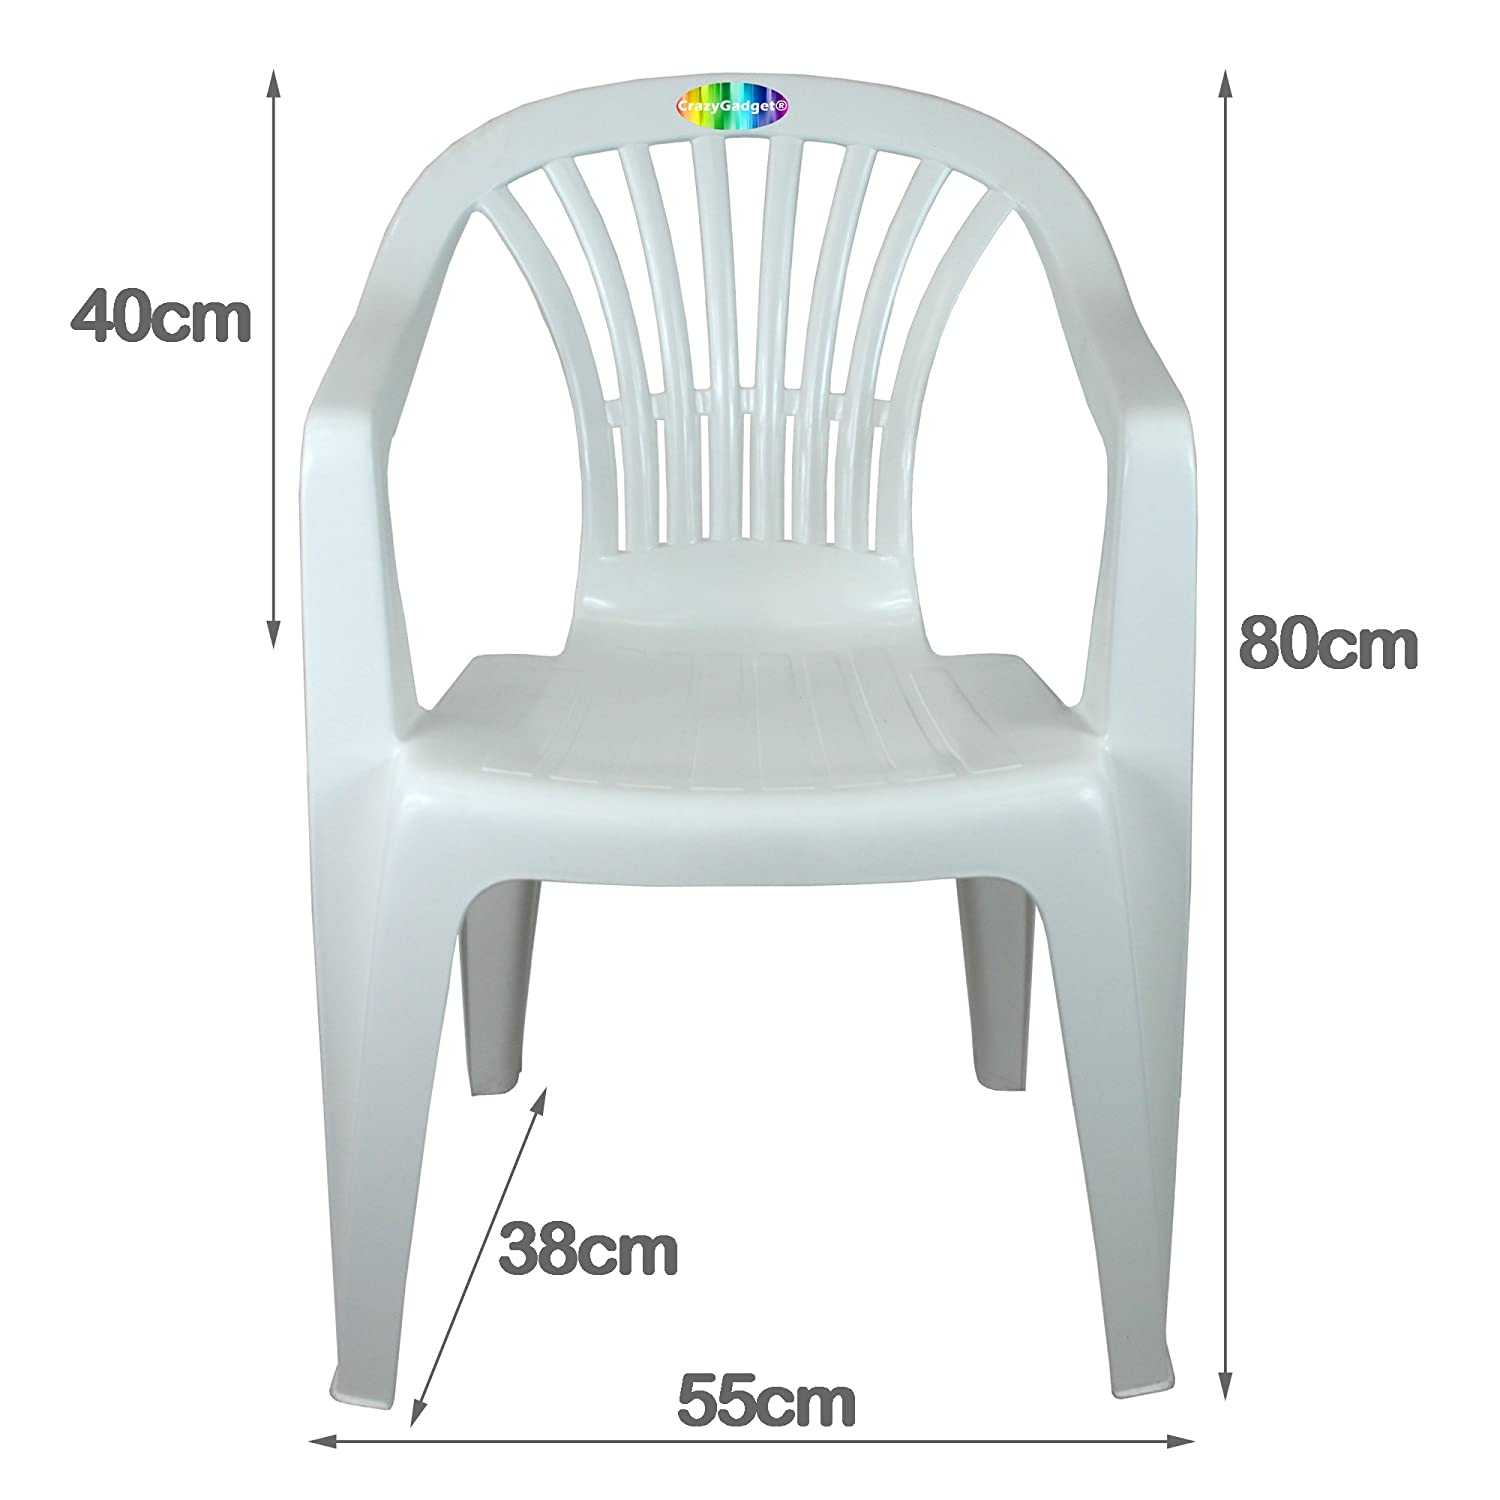 a35dea12a33f CrazyGadget® Plastic Garden Low Back Chair Stackable Patio Outdoor Party  Seat Chairs Picnic White: Amazon.co.uk: Garden & Outdoors